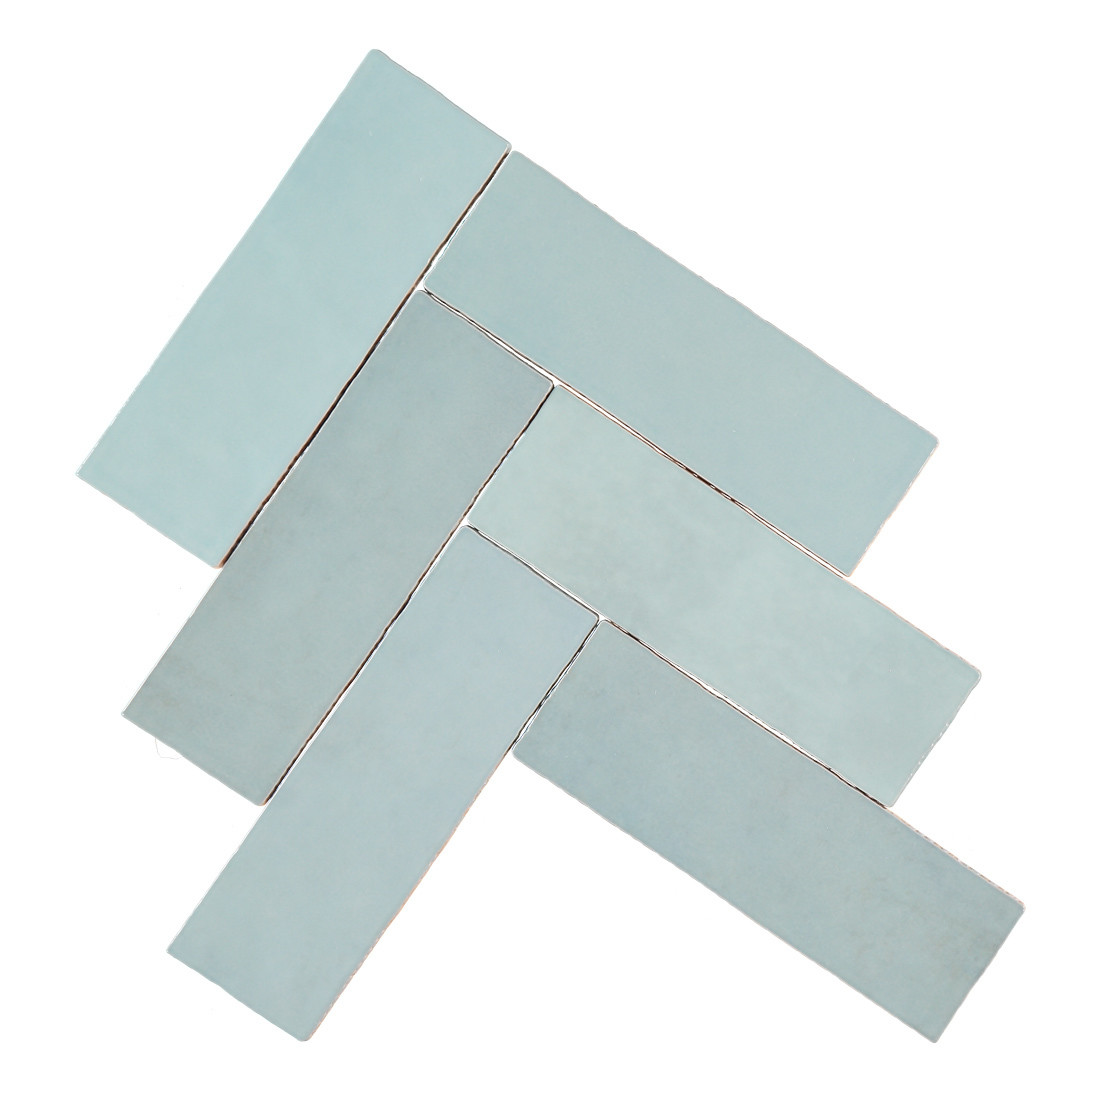 Picasso Pale Teal